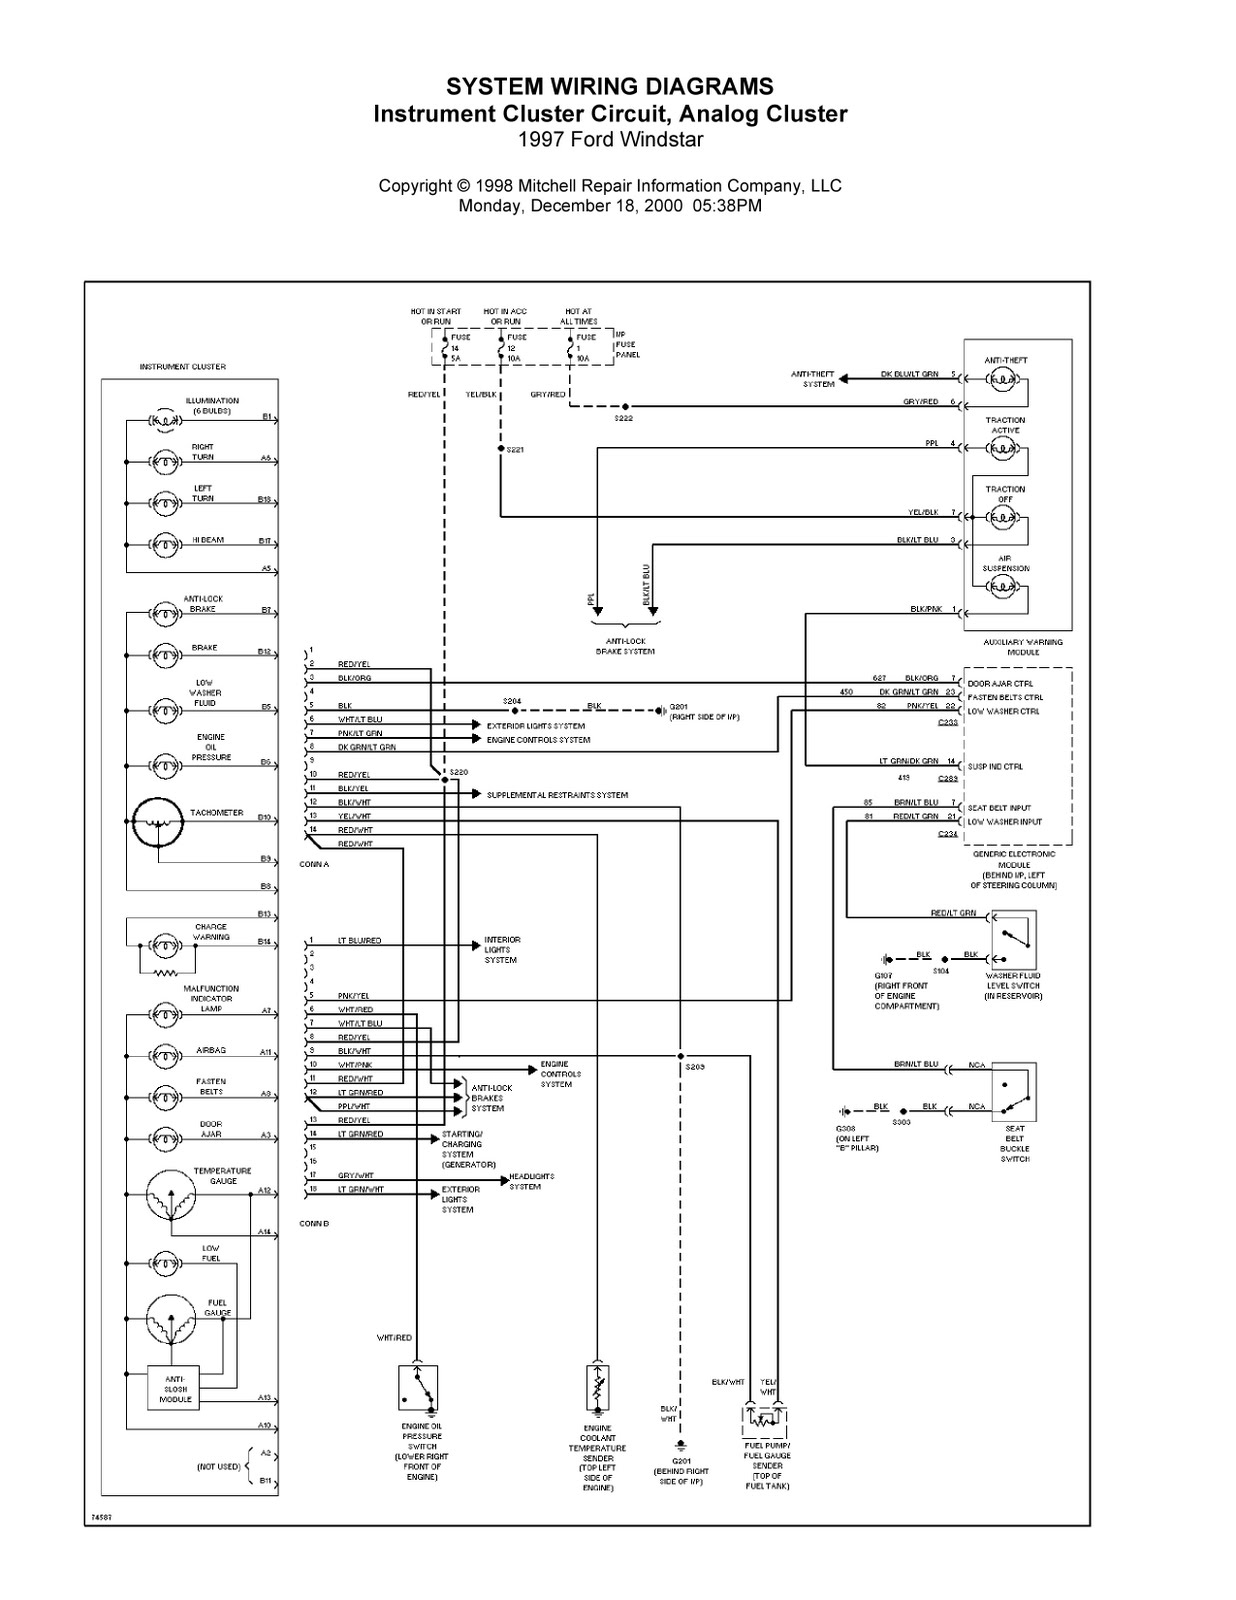 1997 ford windstar complete system wiring diagrams ... complete system wiring diagrams 1997 ford windstar